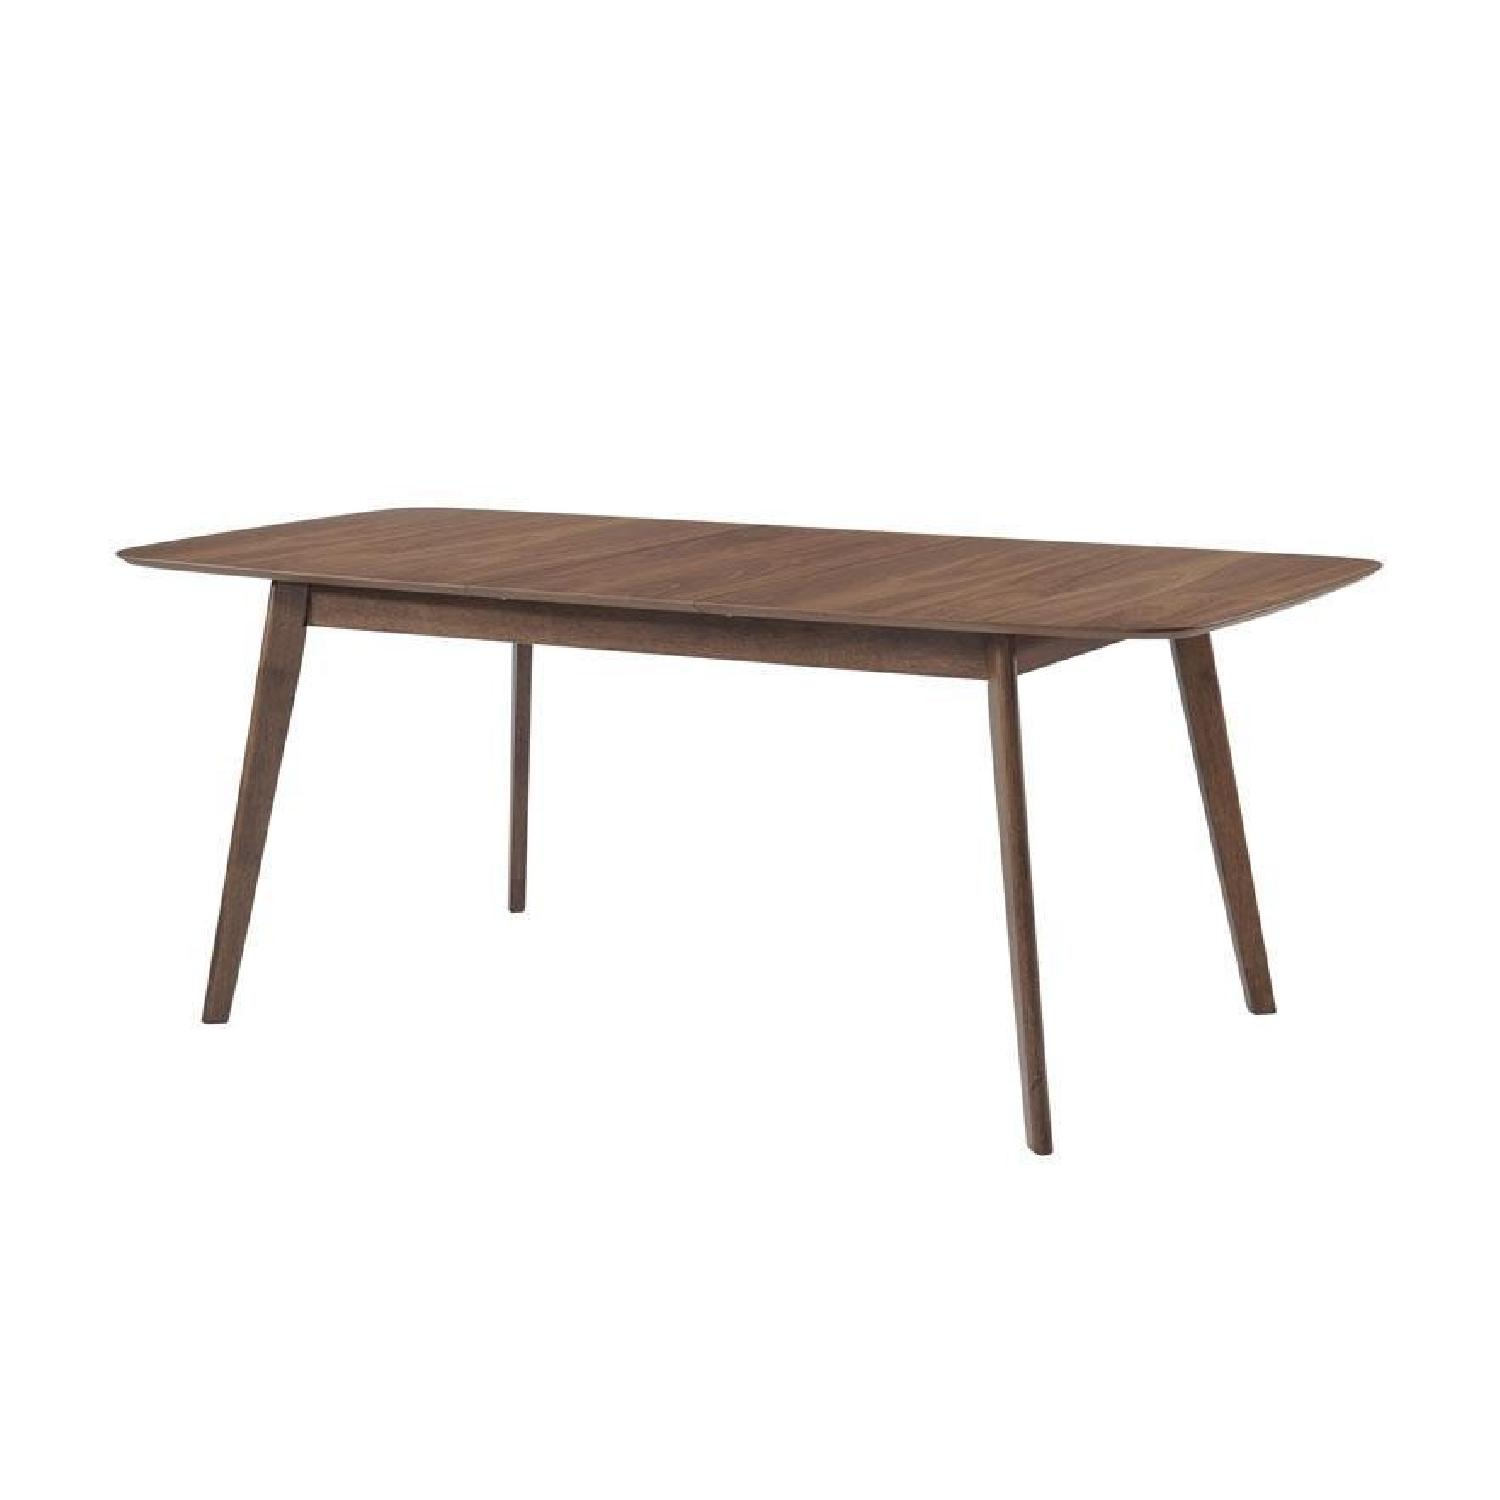 Natural Walnut Dining Table w/ Extension